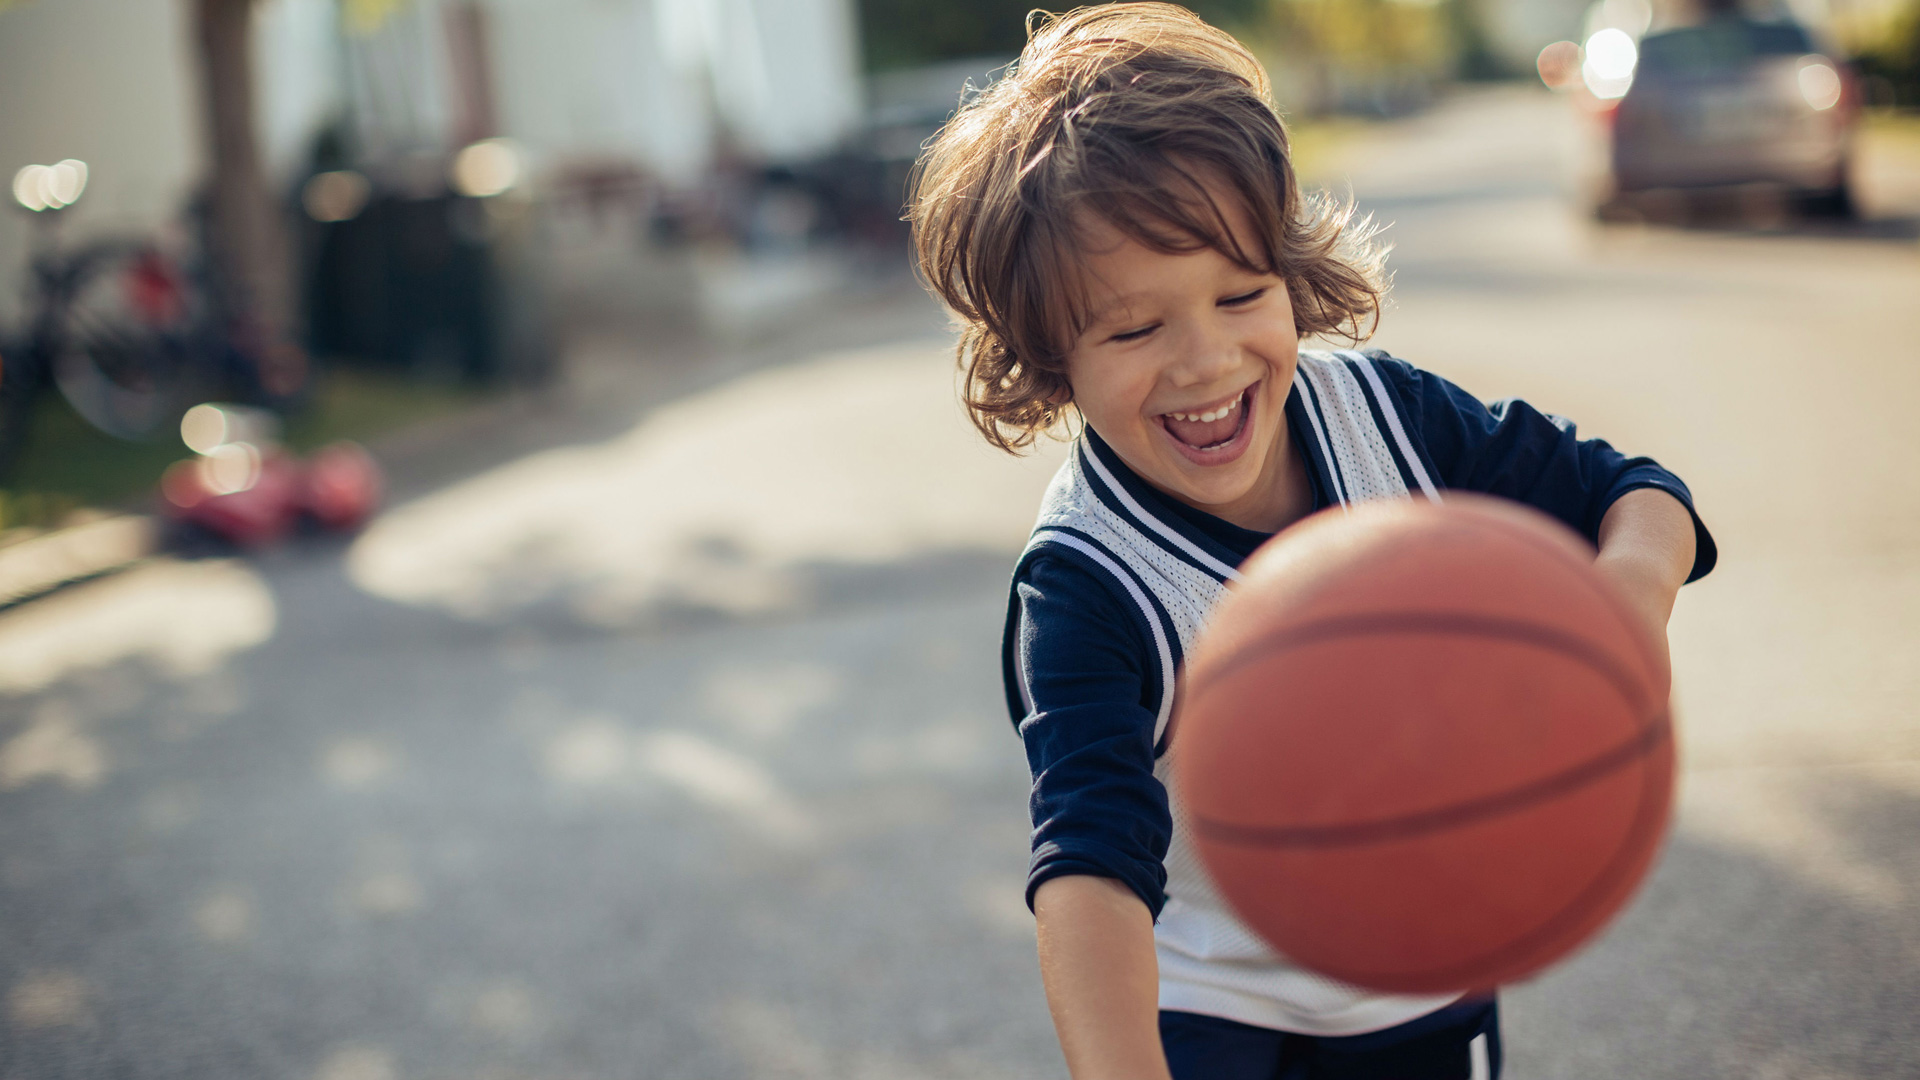 Little boy is smiling while  playing with a basketball on a suburban street